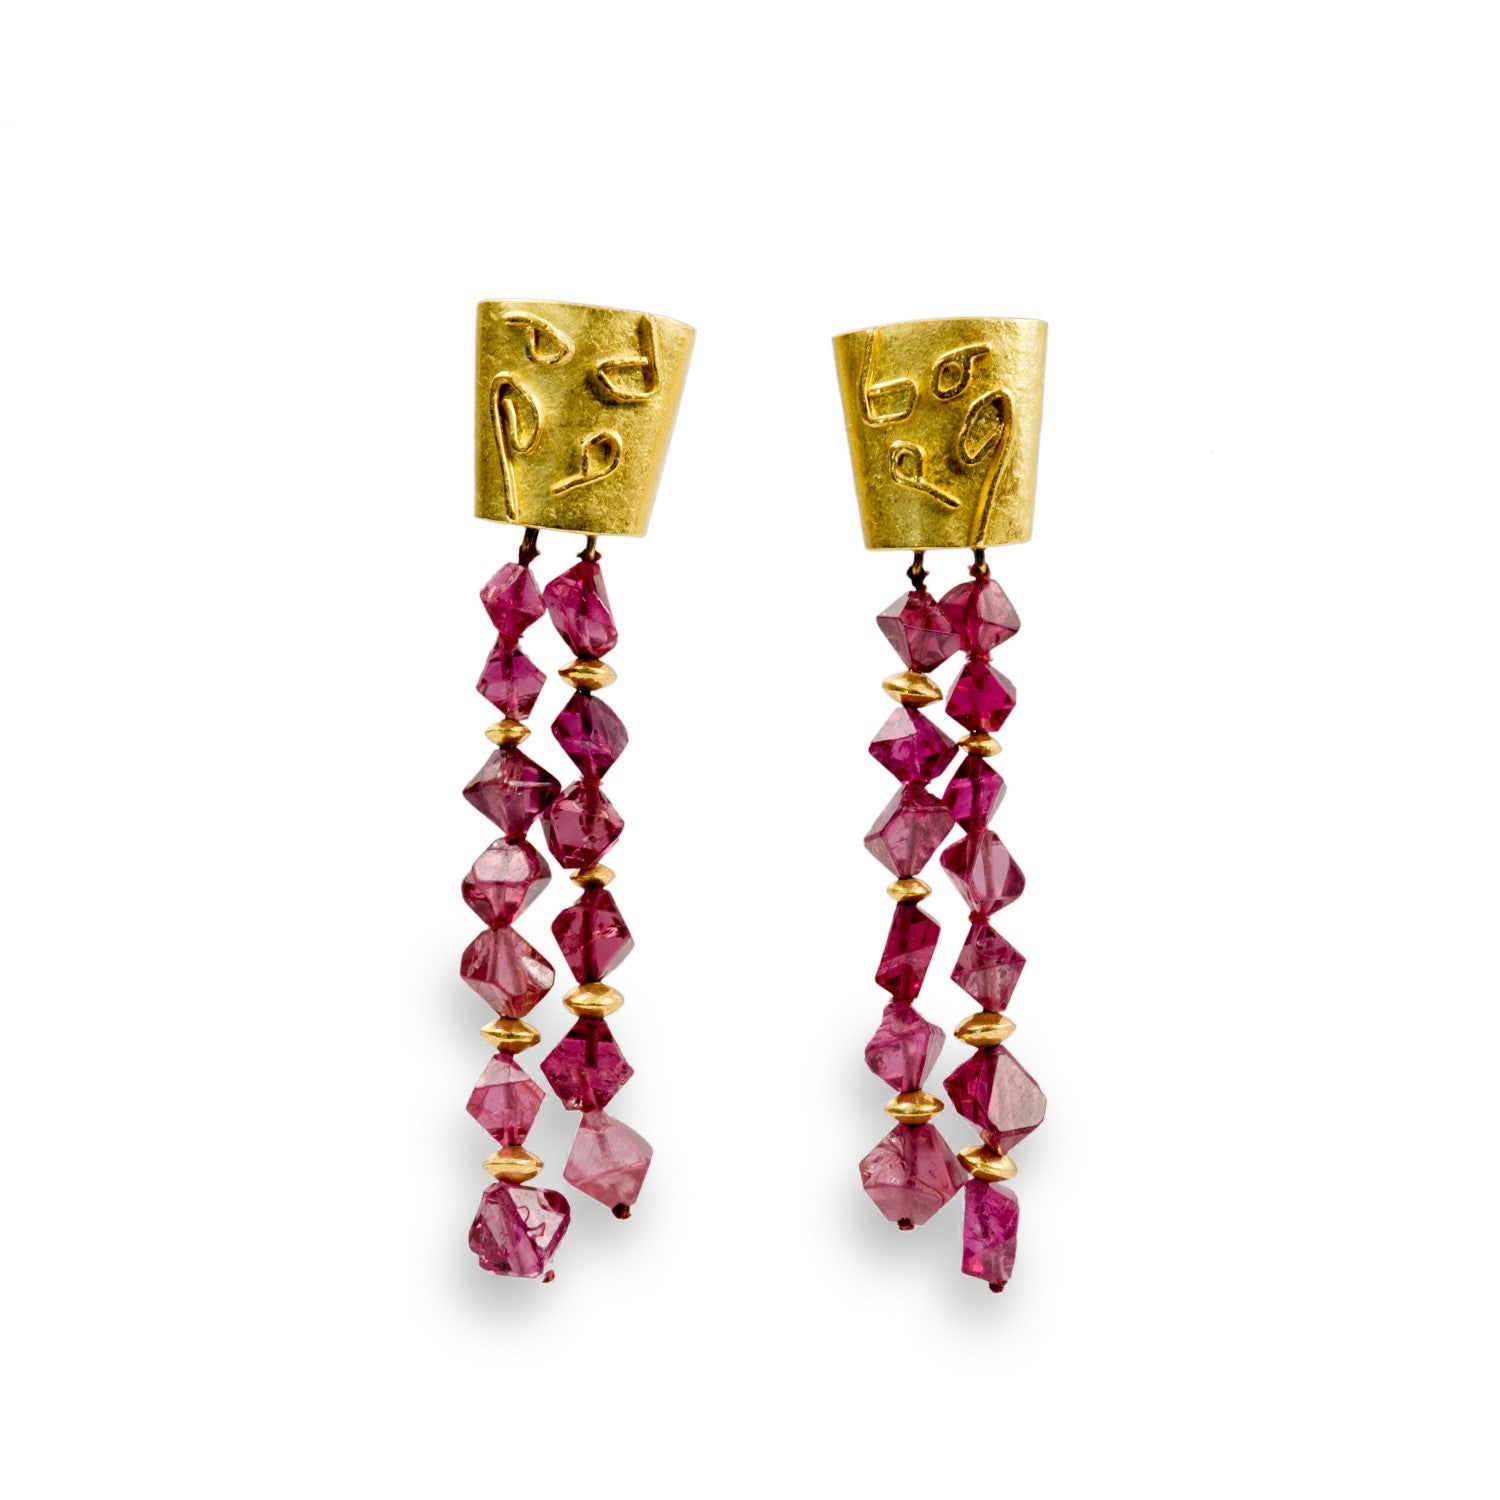 valla round diamond earrings earring jewellery diamonds ruby white gold baguette